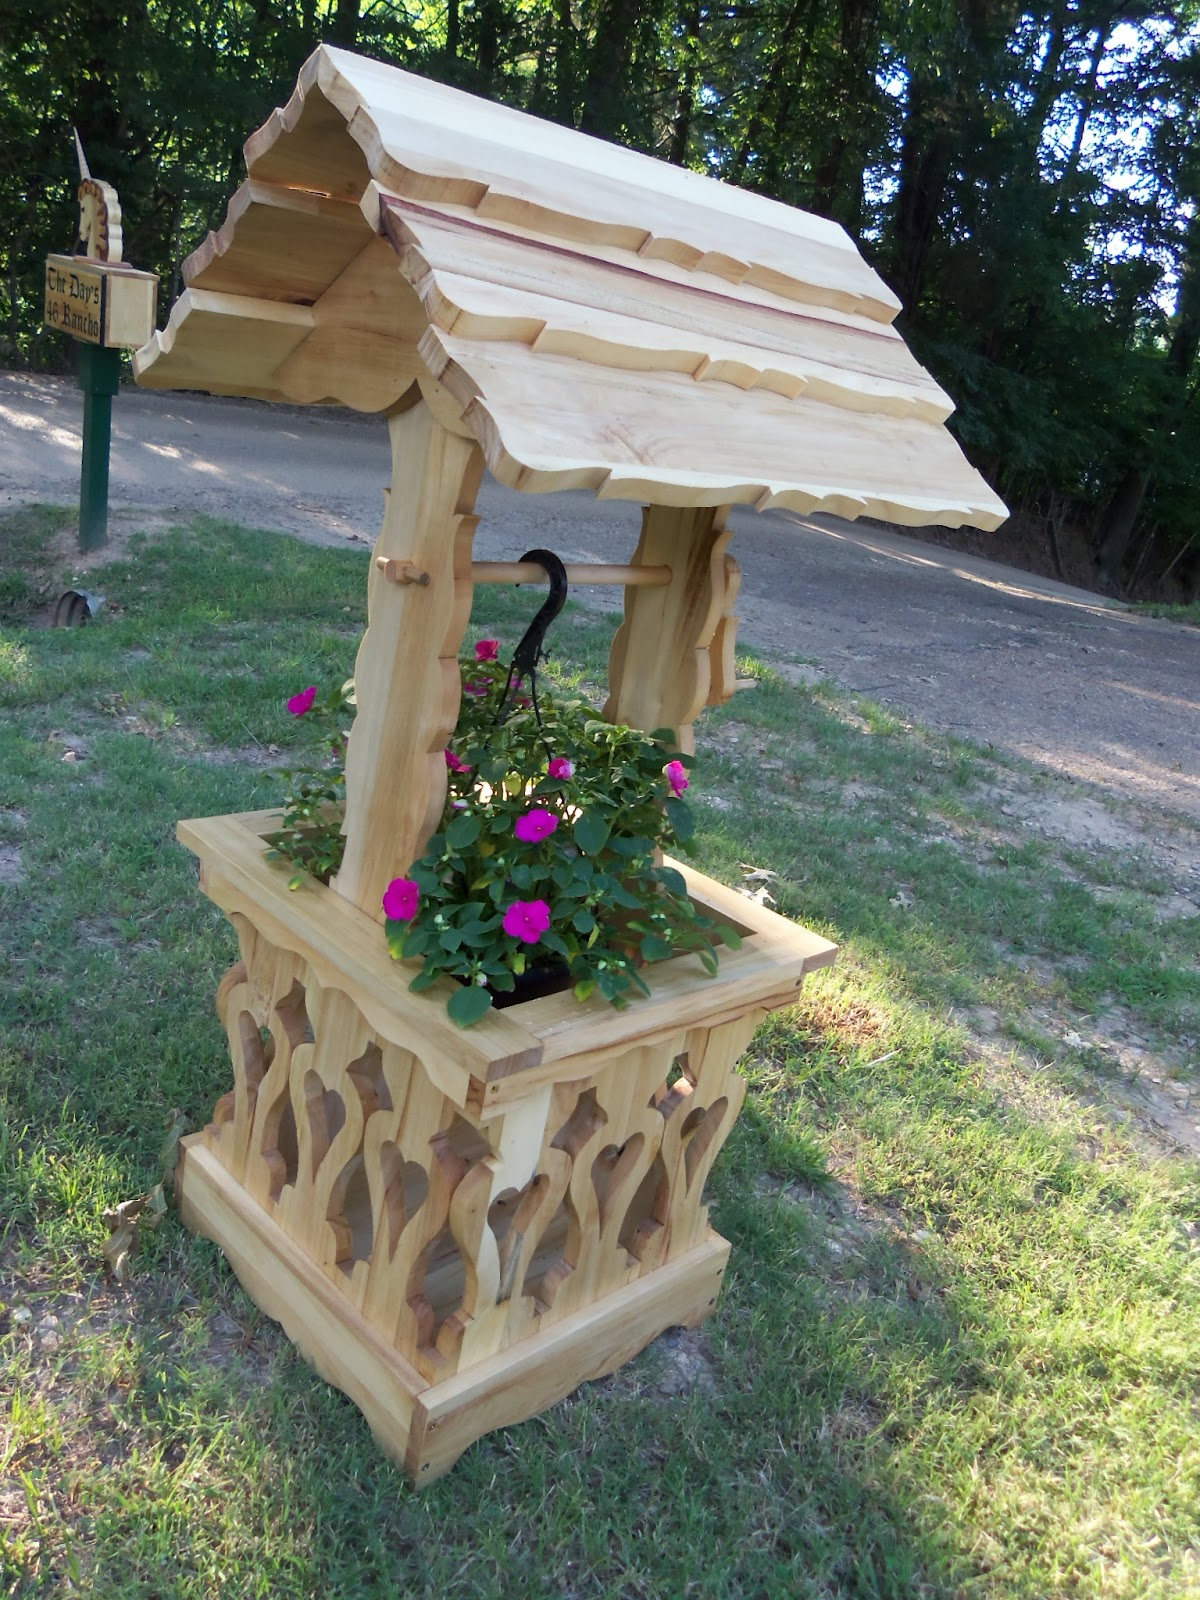 Wddsr fine woodworks wishing well planters for Garden wishing well designs